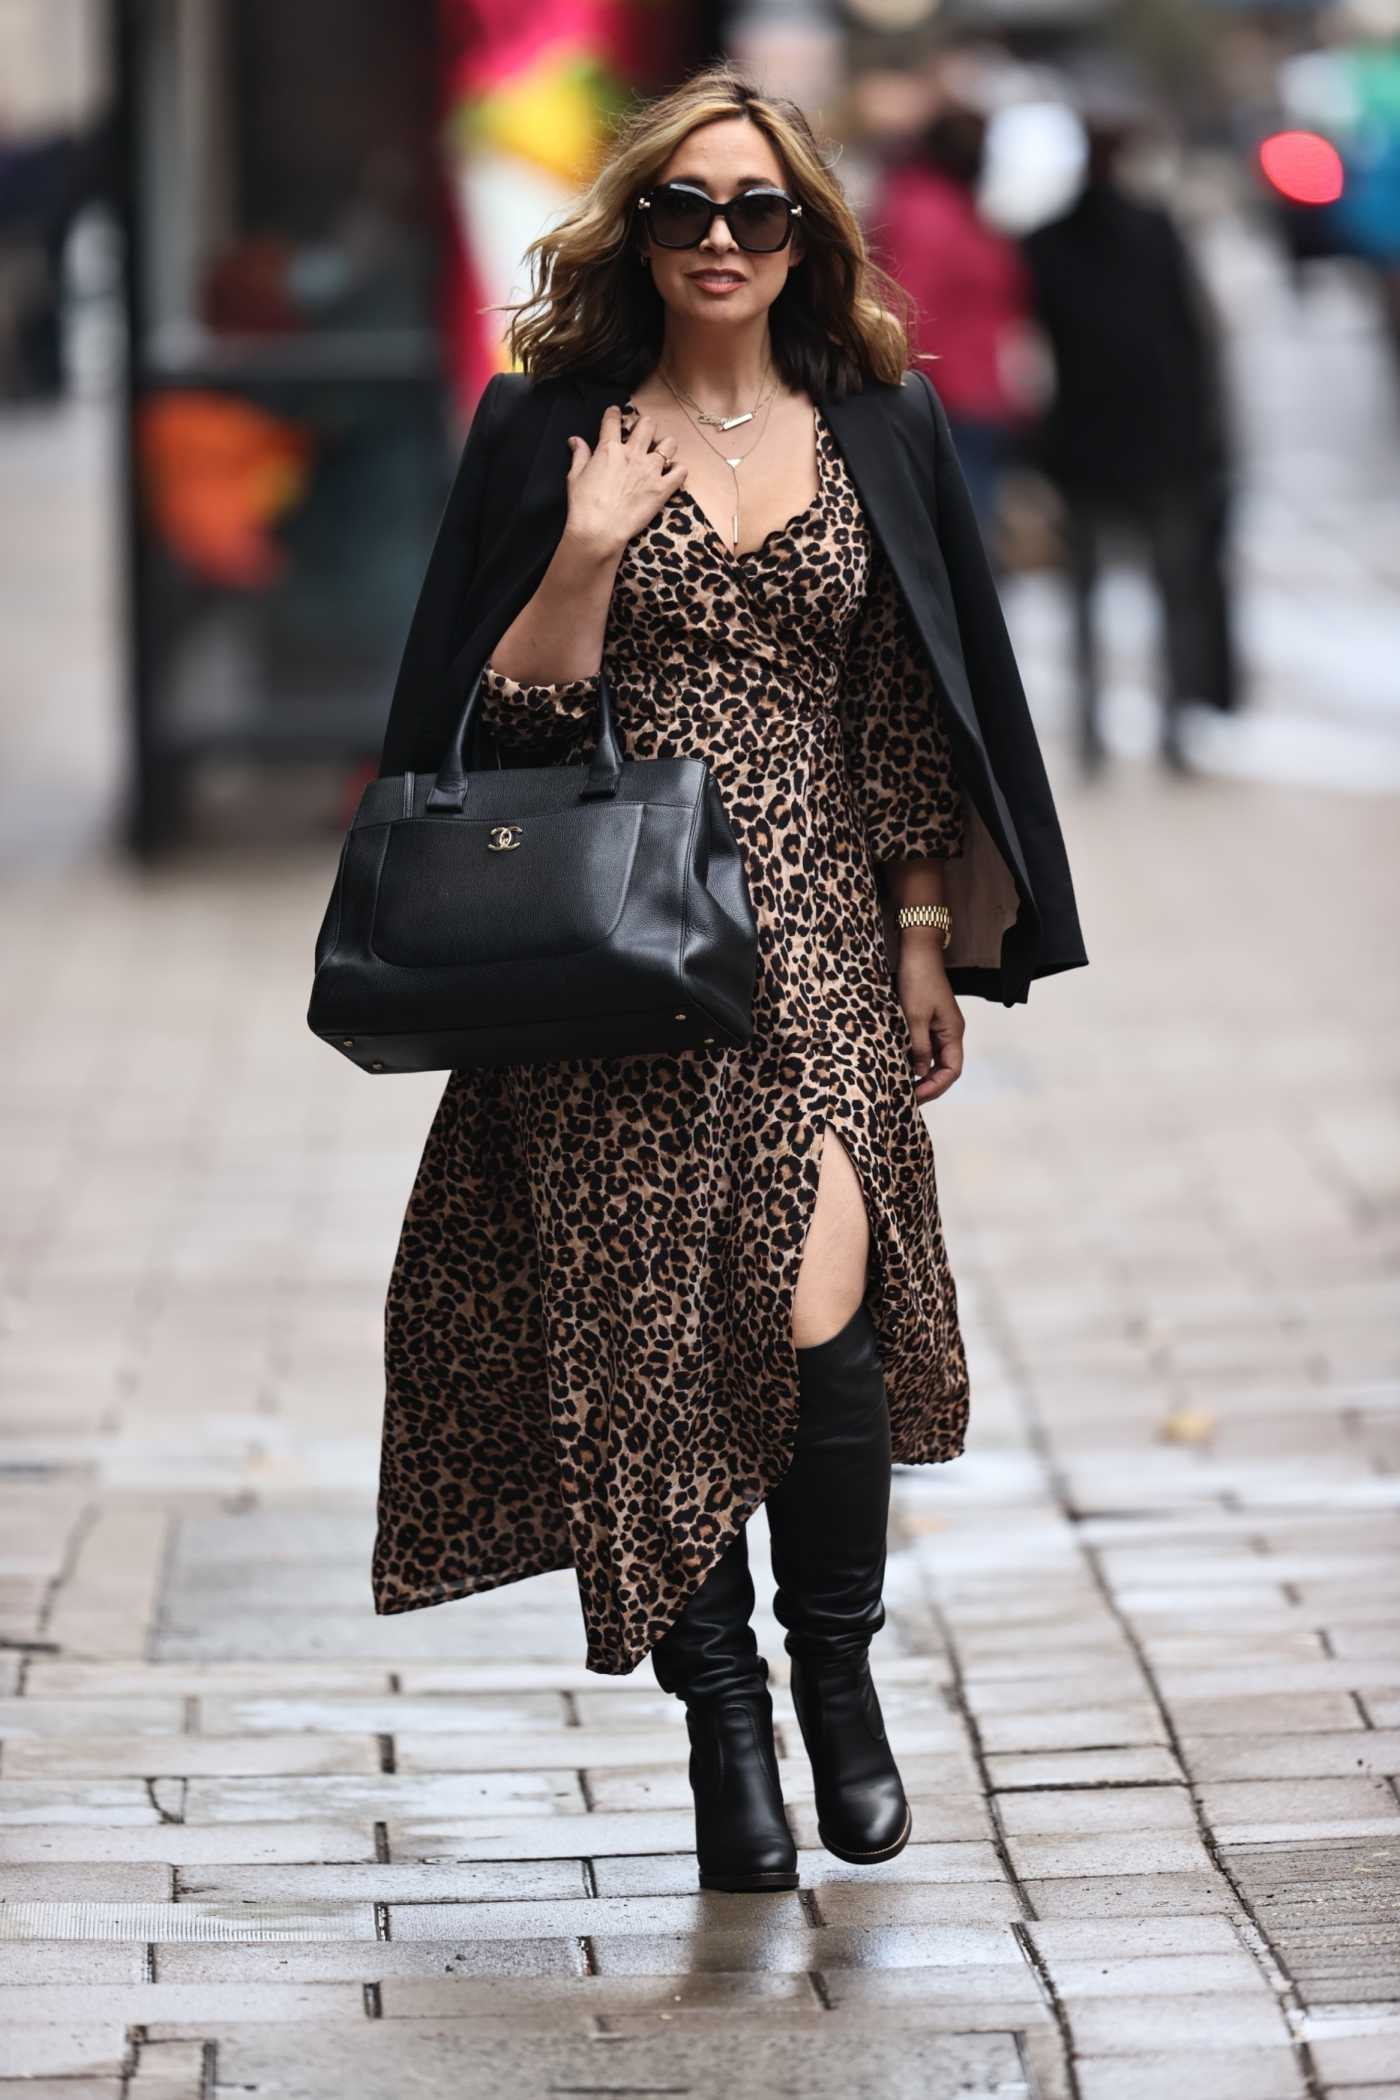 Myleene Klass in an Animal Print Dress Arrives at the Smooth Radio in London 10/06/2020